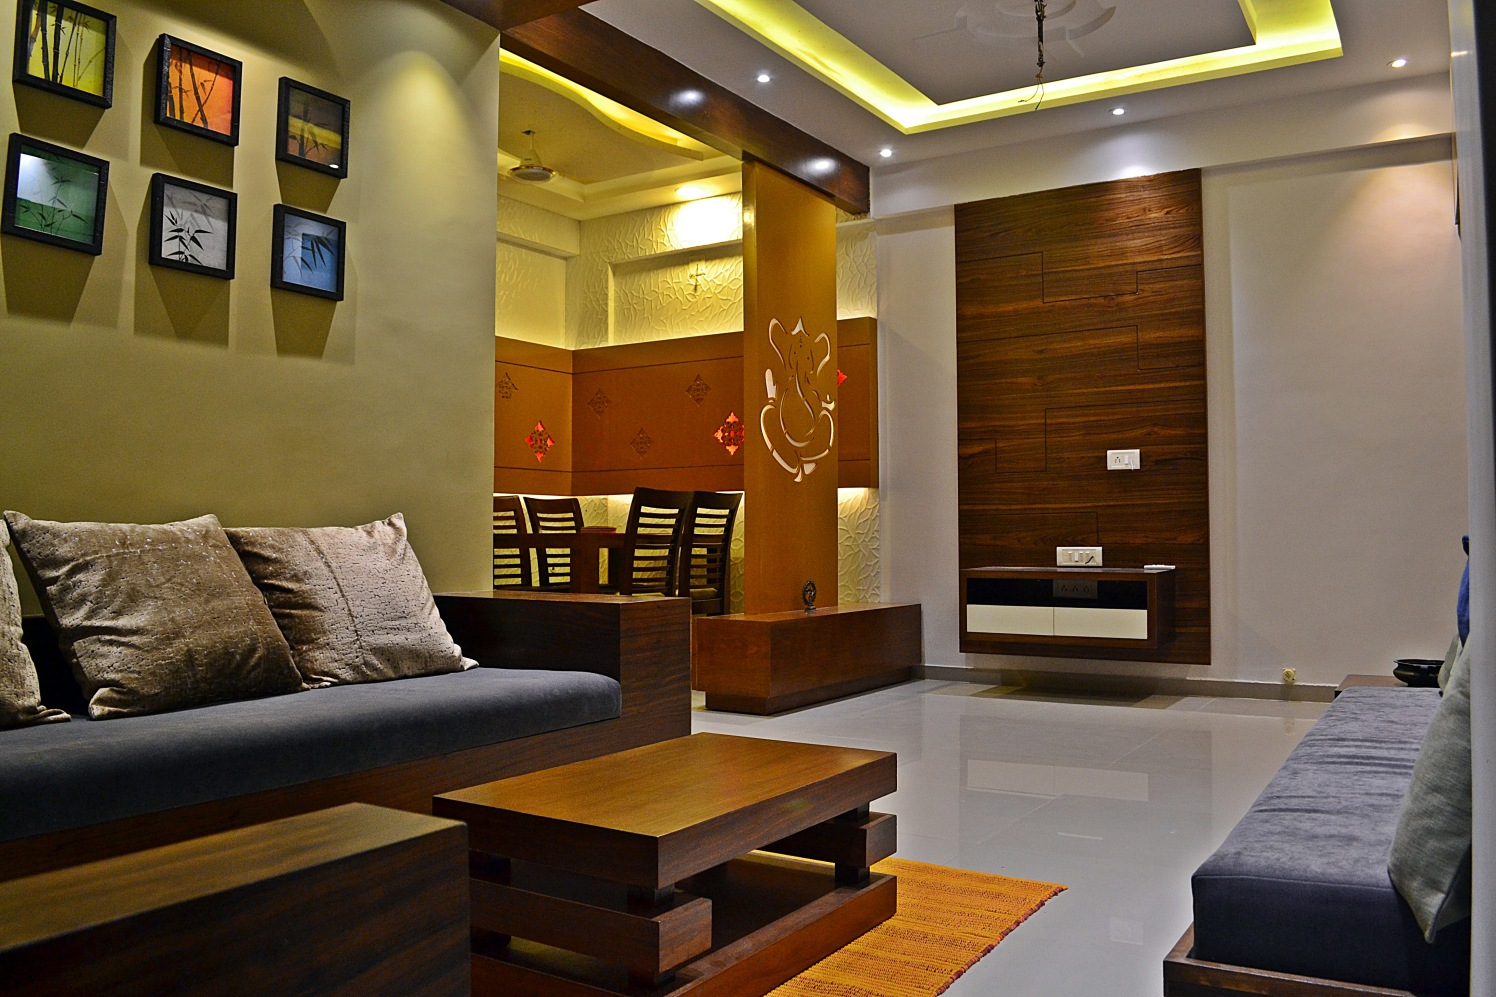 Living Area With Dark Grey Sofa And Brown Cusions by Ankita Patel Living-room Modern | Interior Design Photos & Ideas